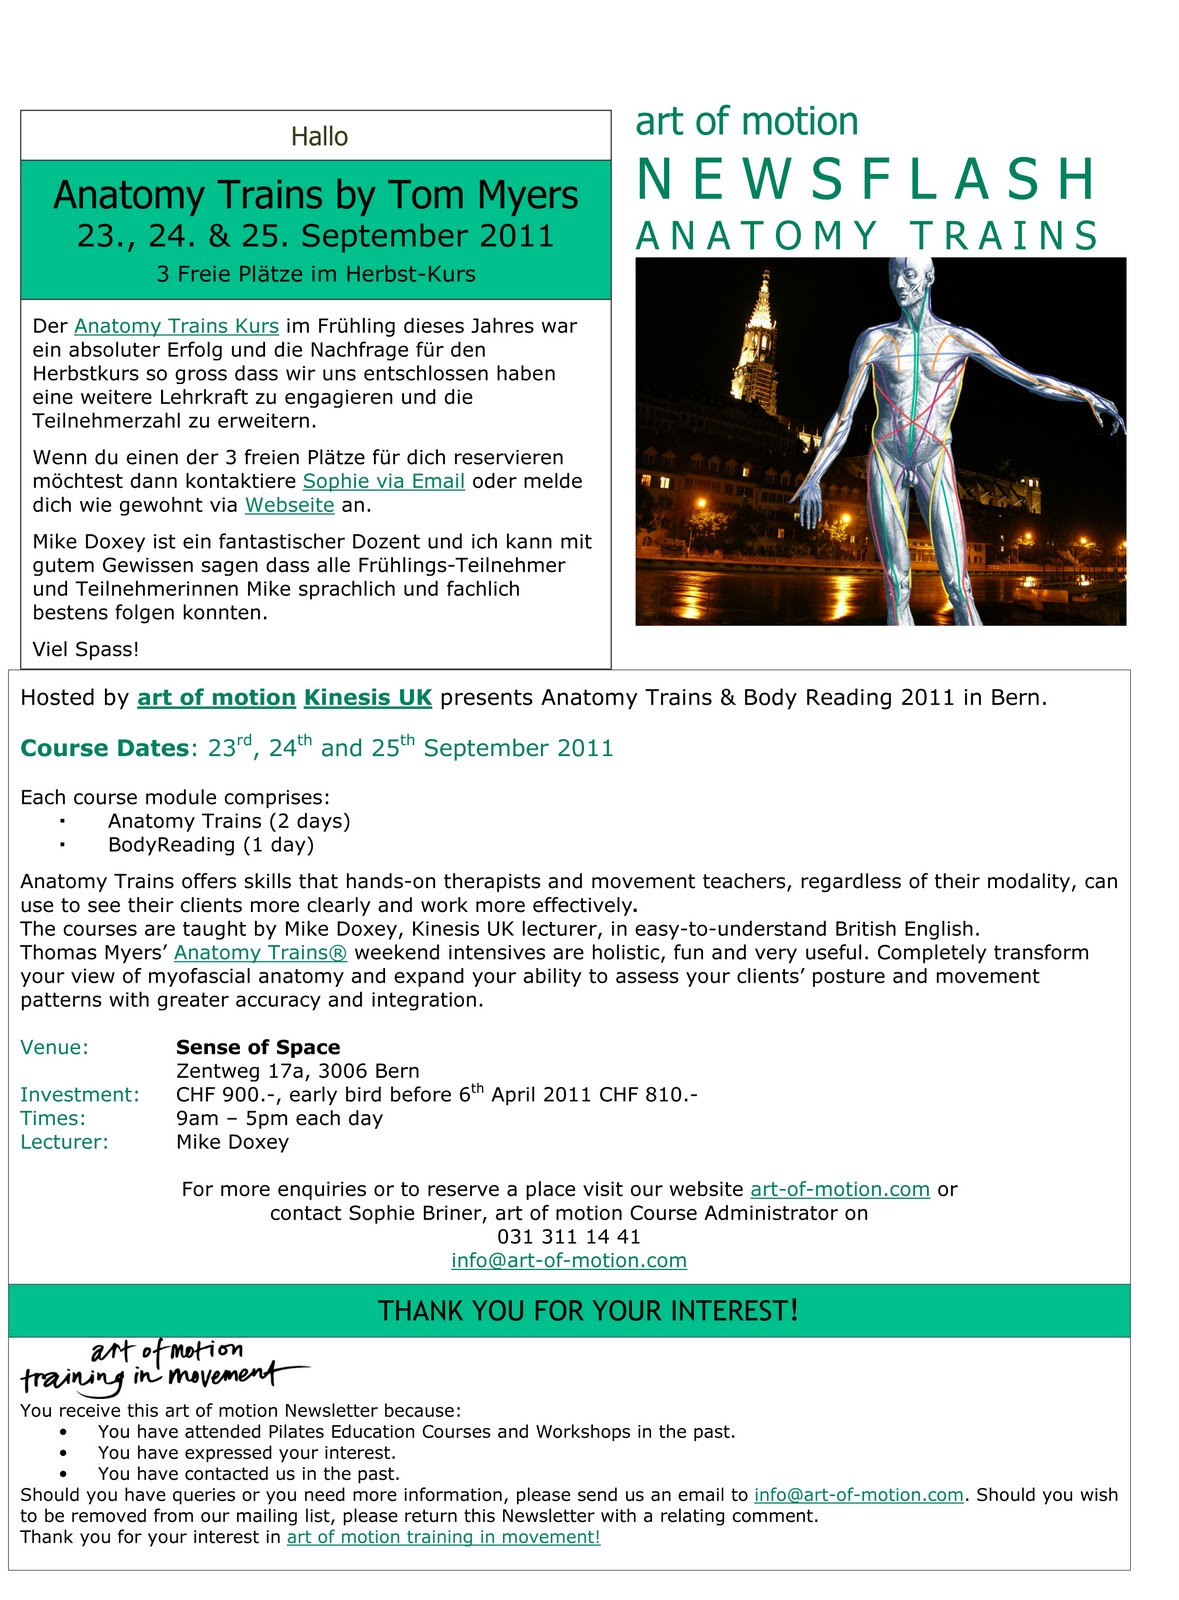 ART OF MOTION & ULTIMATE MASSAGE SOLUTIONS present Anatomy Trains ...